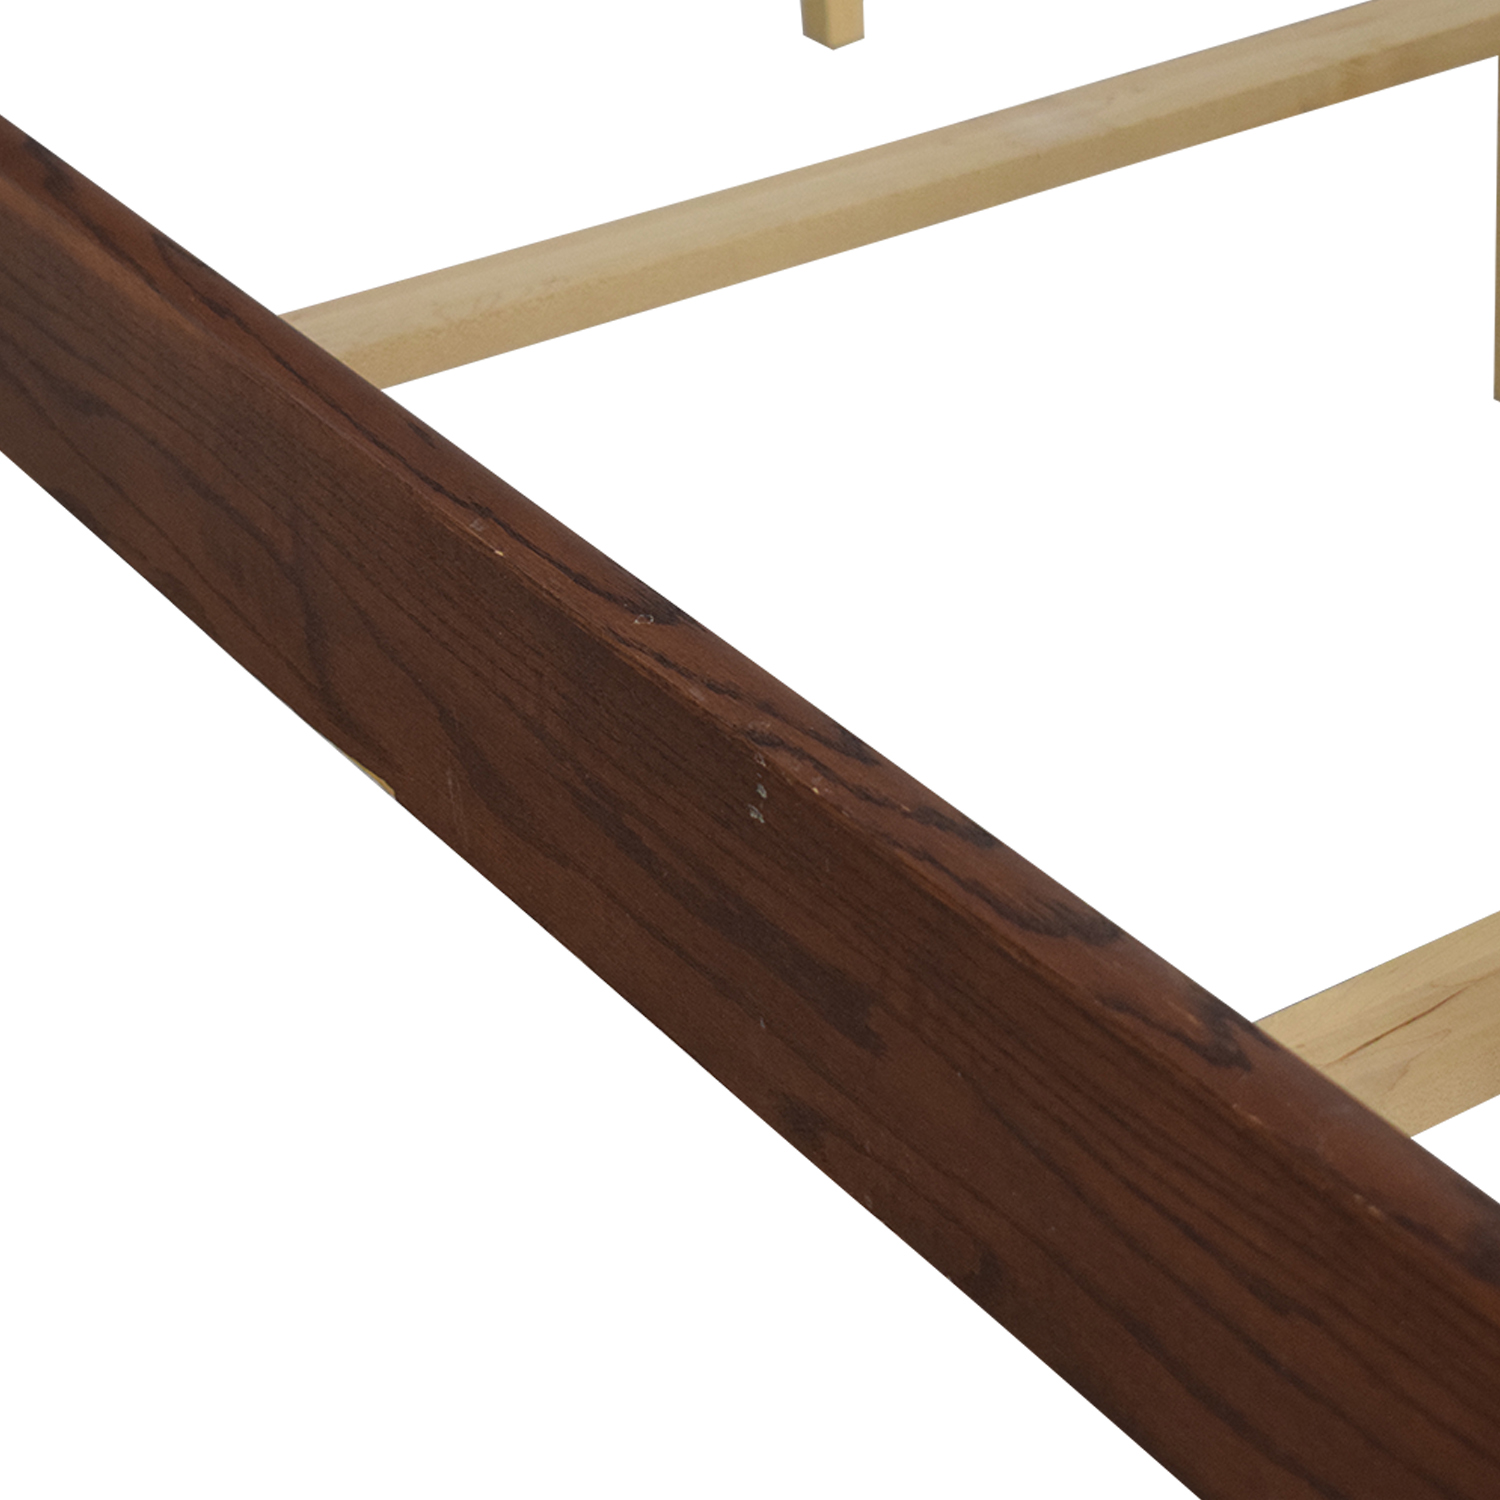 Thomasville Thomasville Queen Spindle Bed Frame